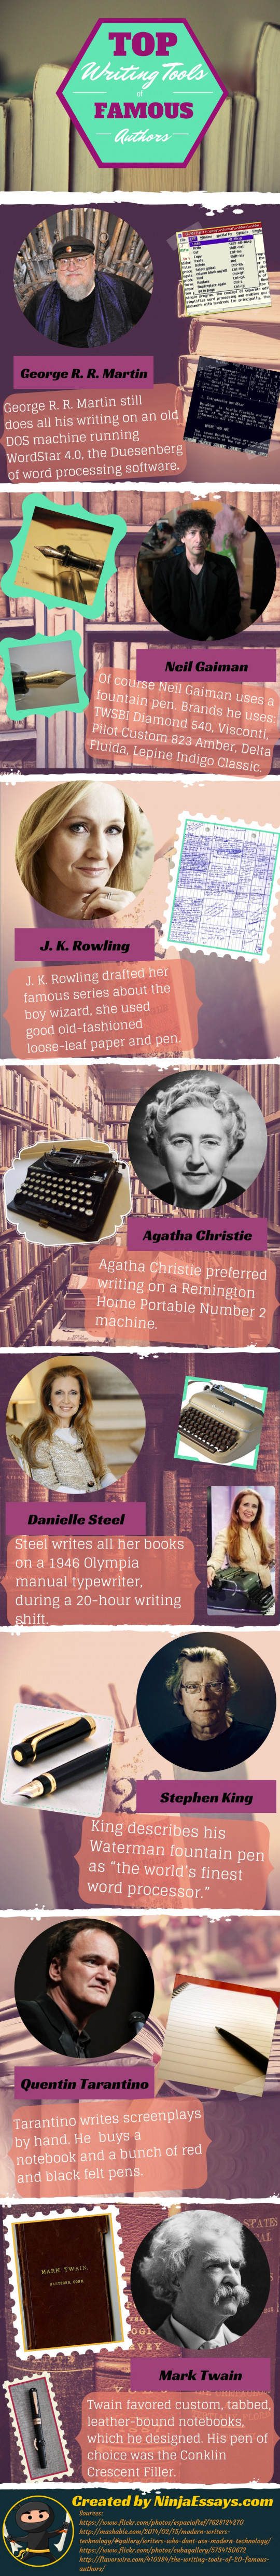 Top Writing Tools of Famous Authors